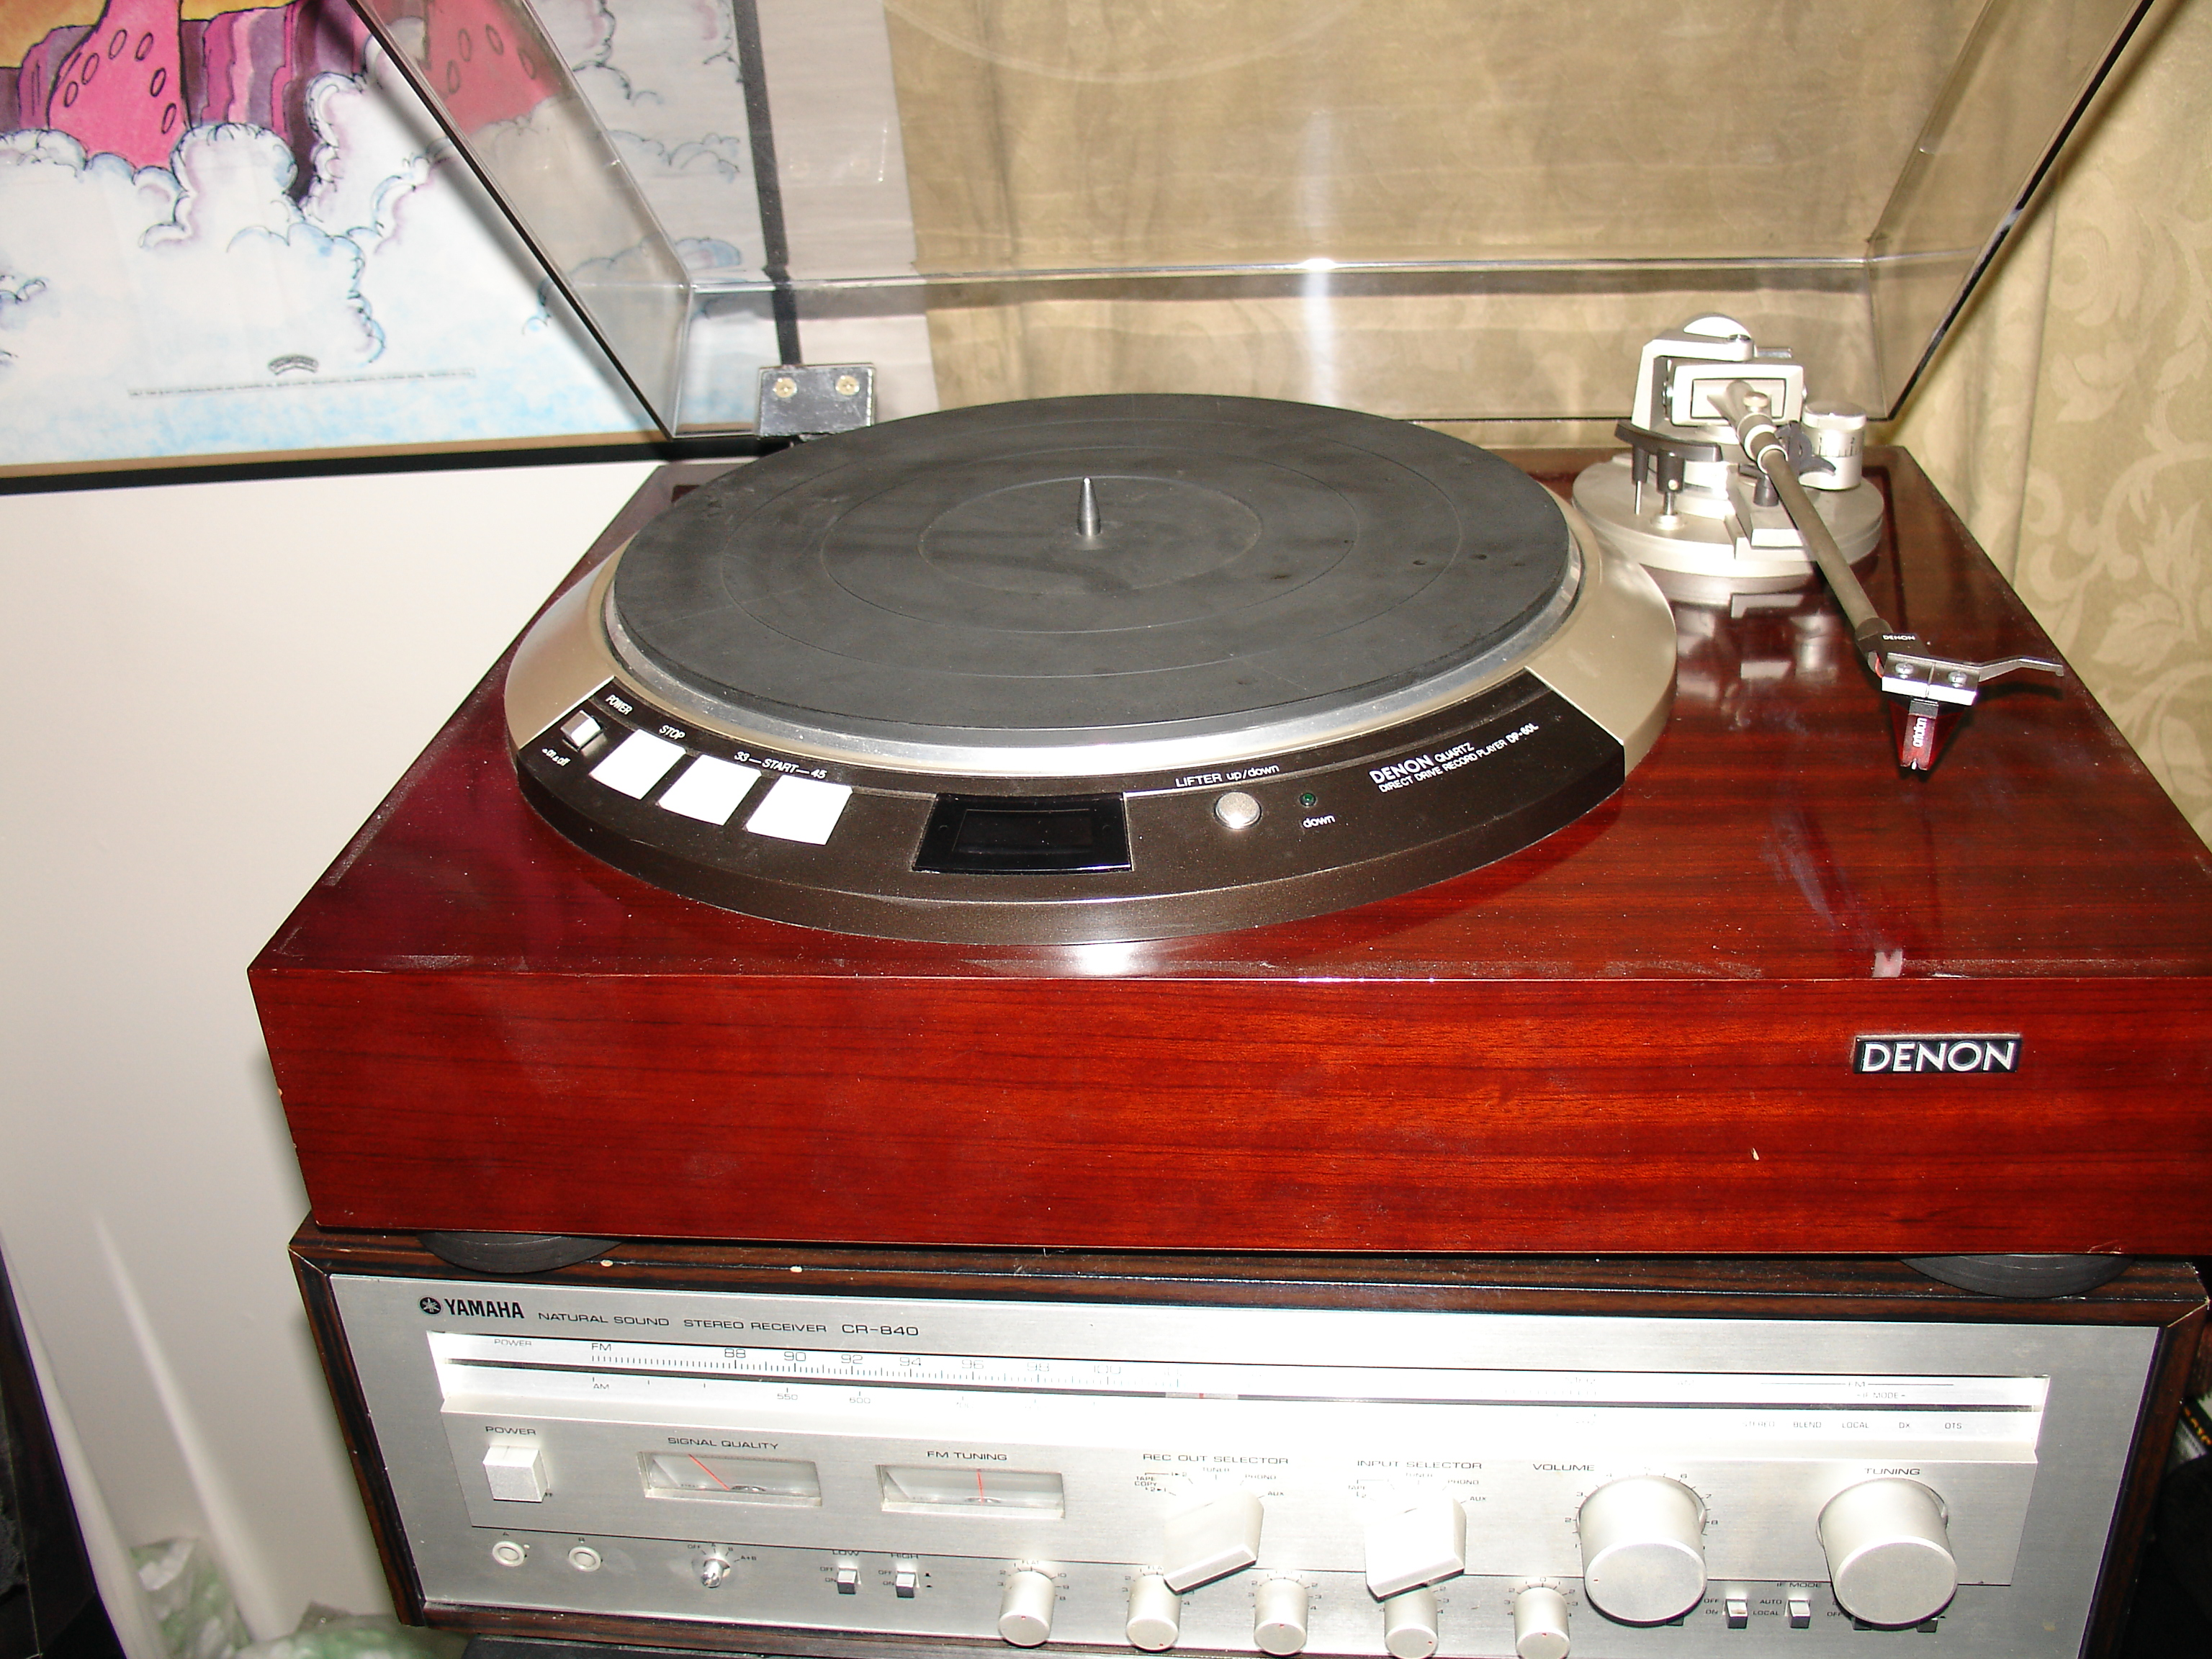 Denon DP-60L Rosewood Turntable and my Yamaha CR-840 integrated tuner/amplifier